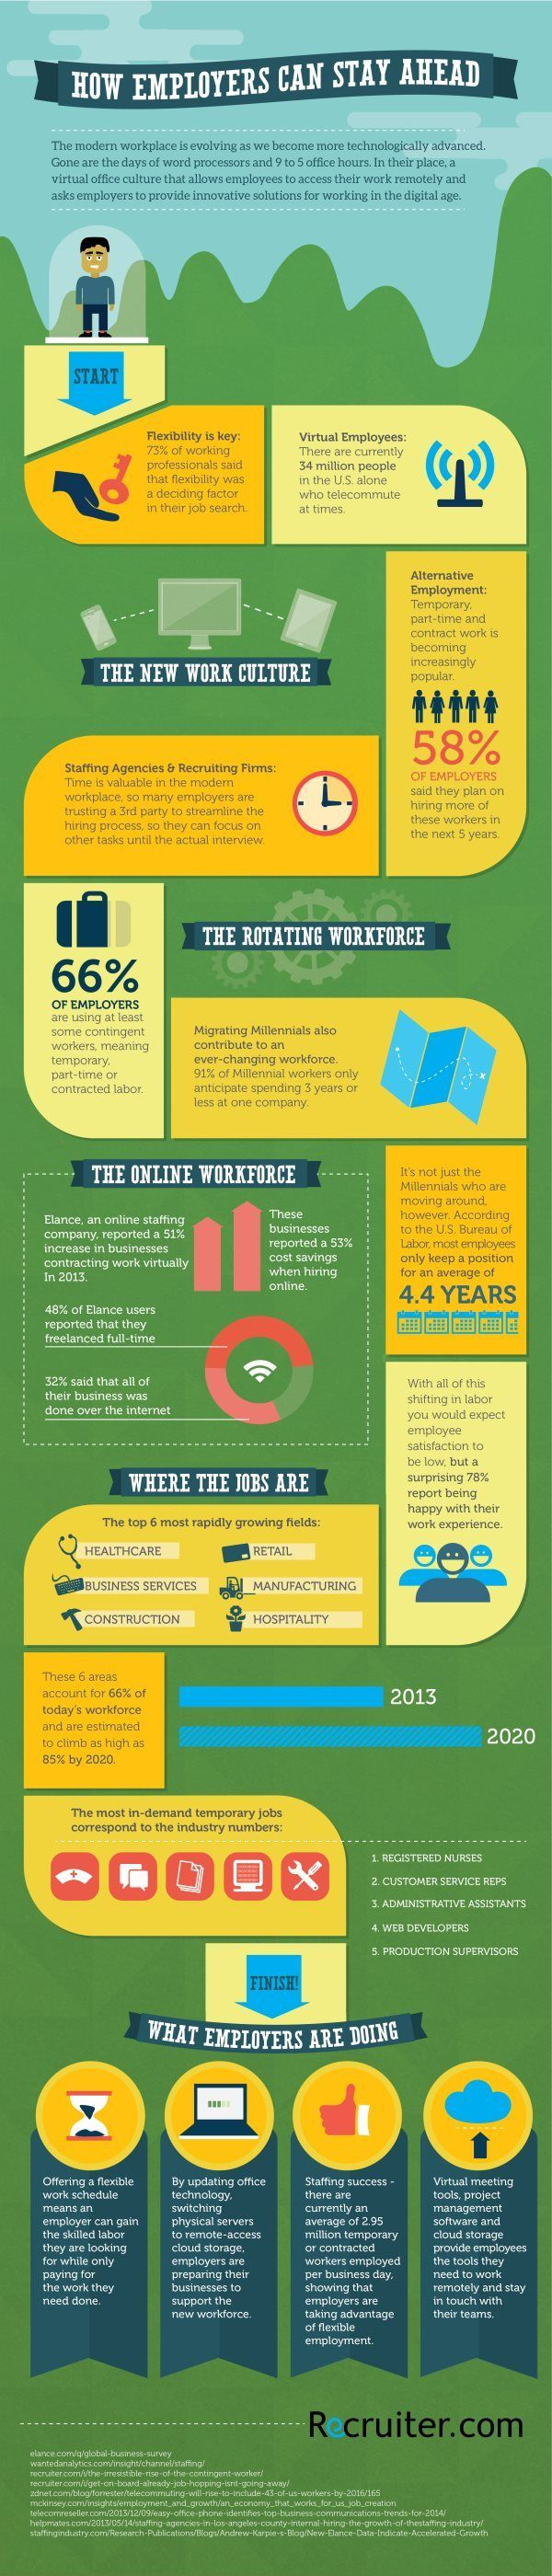 Best Hr Images On   Human Resources Info Graphics